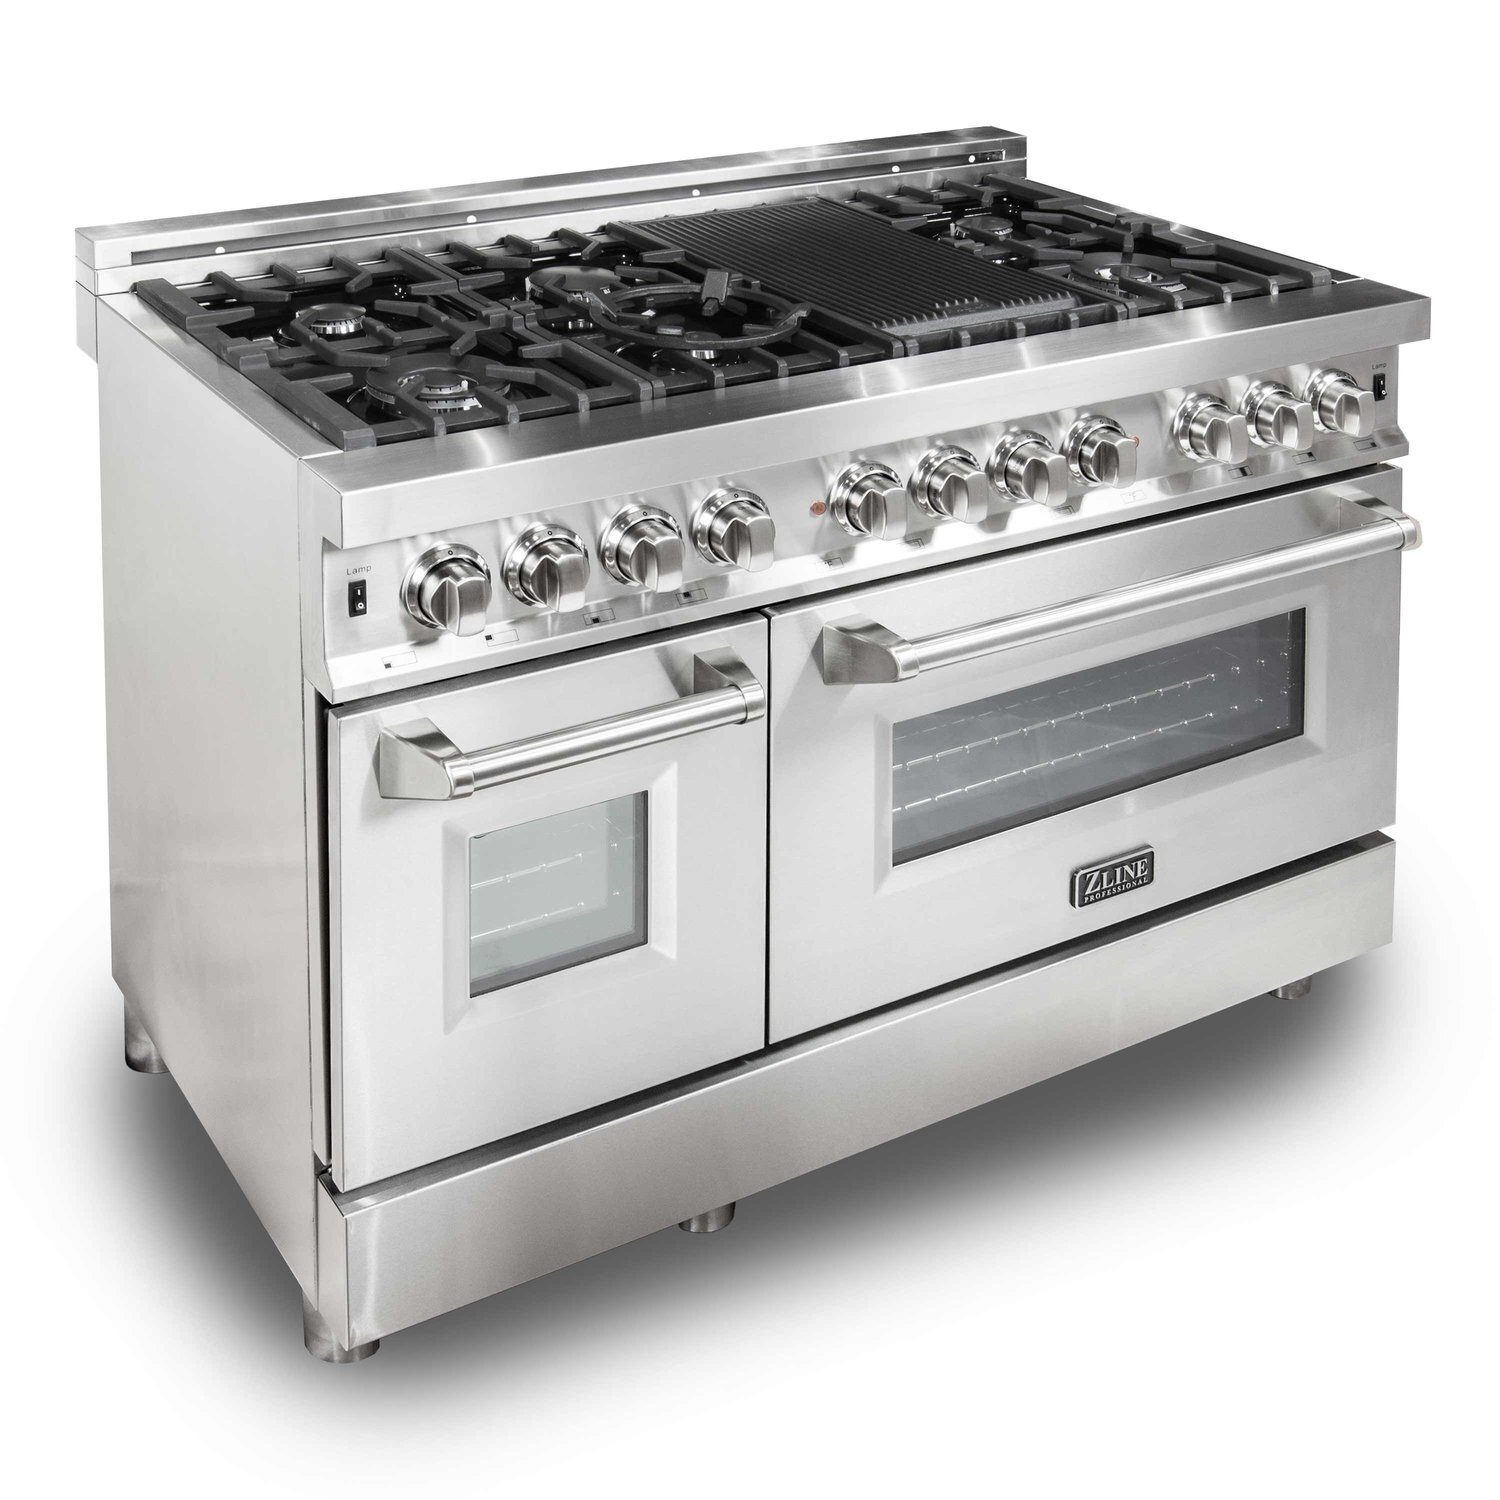 "zline kitchen & bath's professional 48"" dual fuel range"